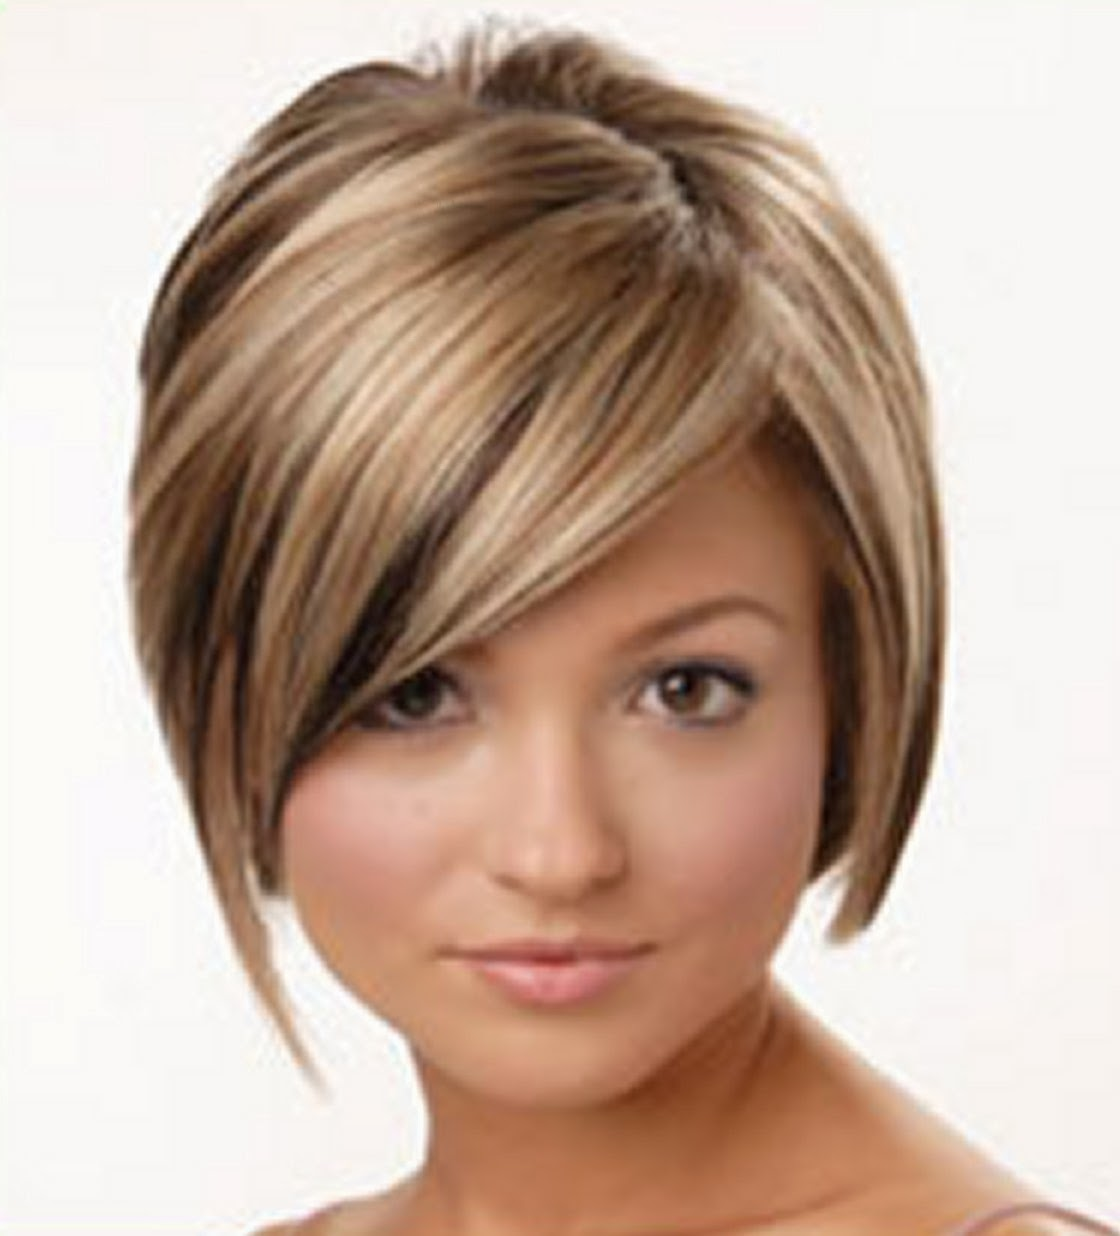 Hairstyles: Short Hairstyles for Women With Straight and Fine Hair